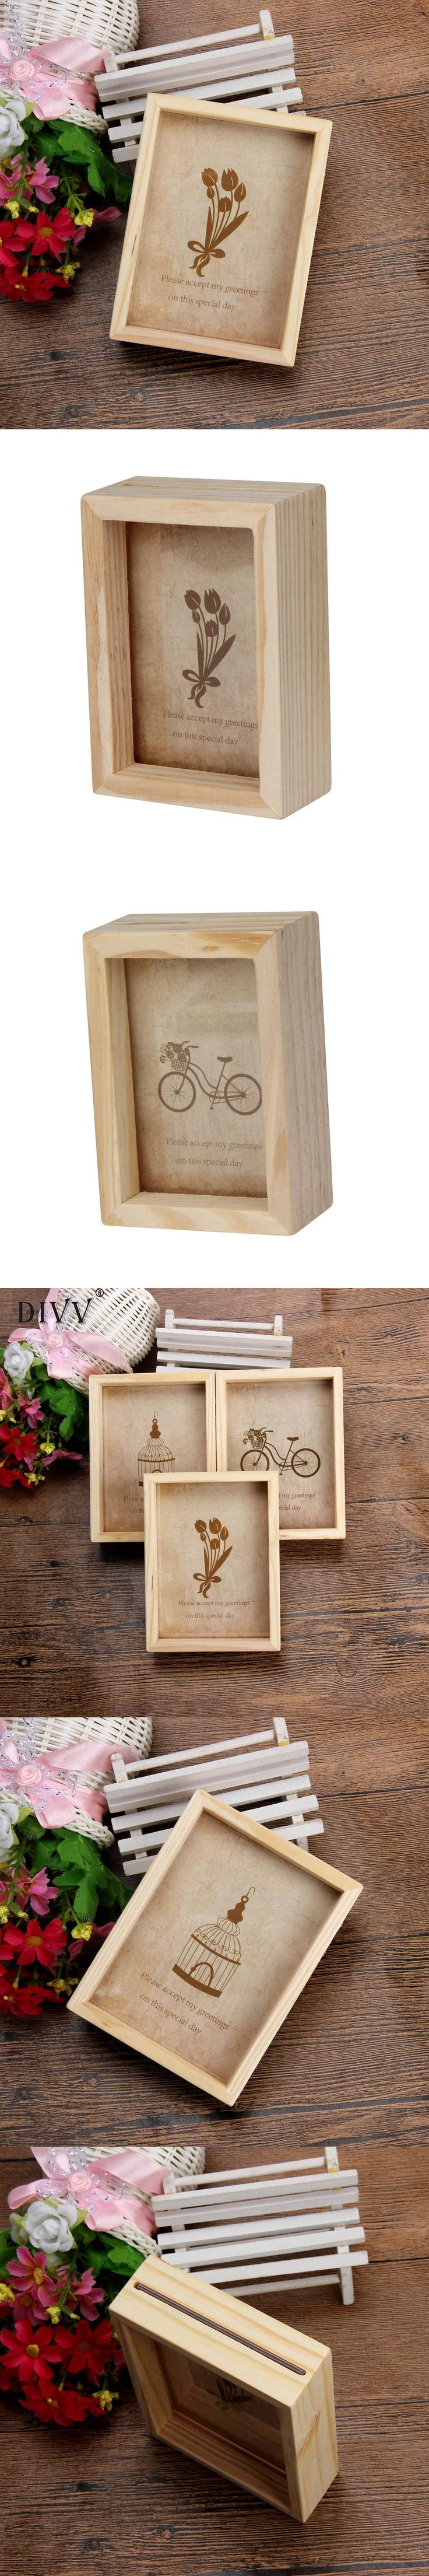 Zero New Home Decor Wooden Picture Frame Destop style Photo Frame Oct13